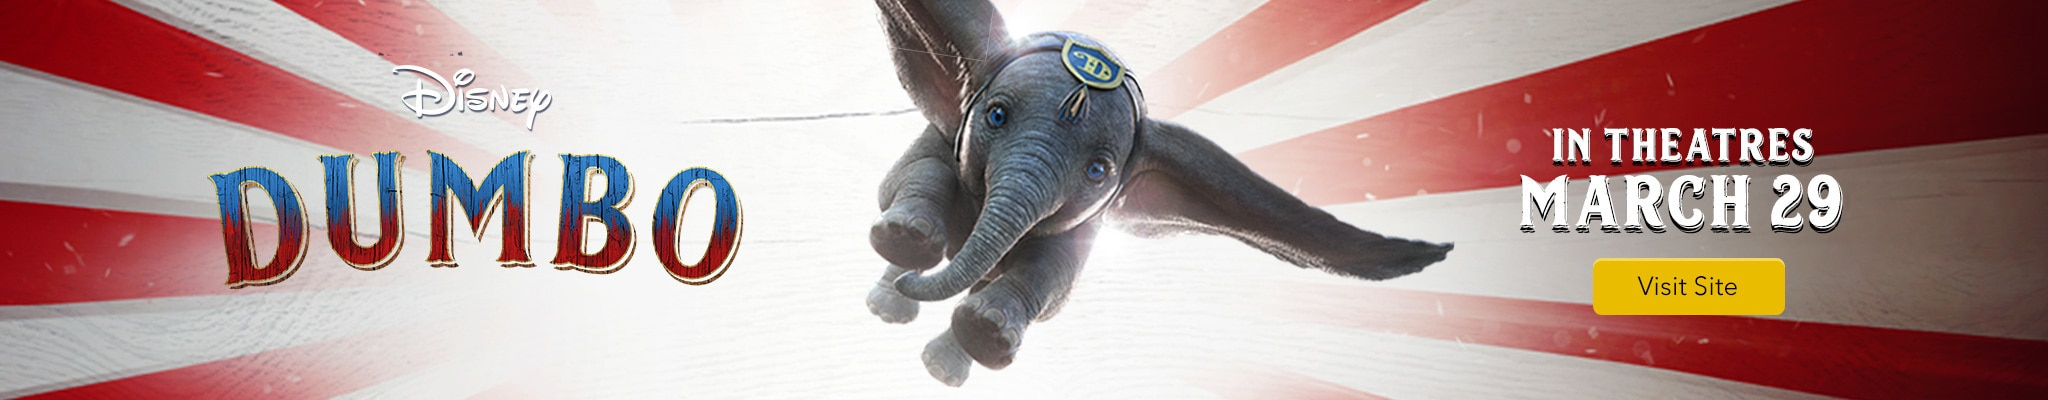 Disney Dumbo - In Theaters March 29 - Visit Site